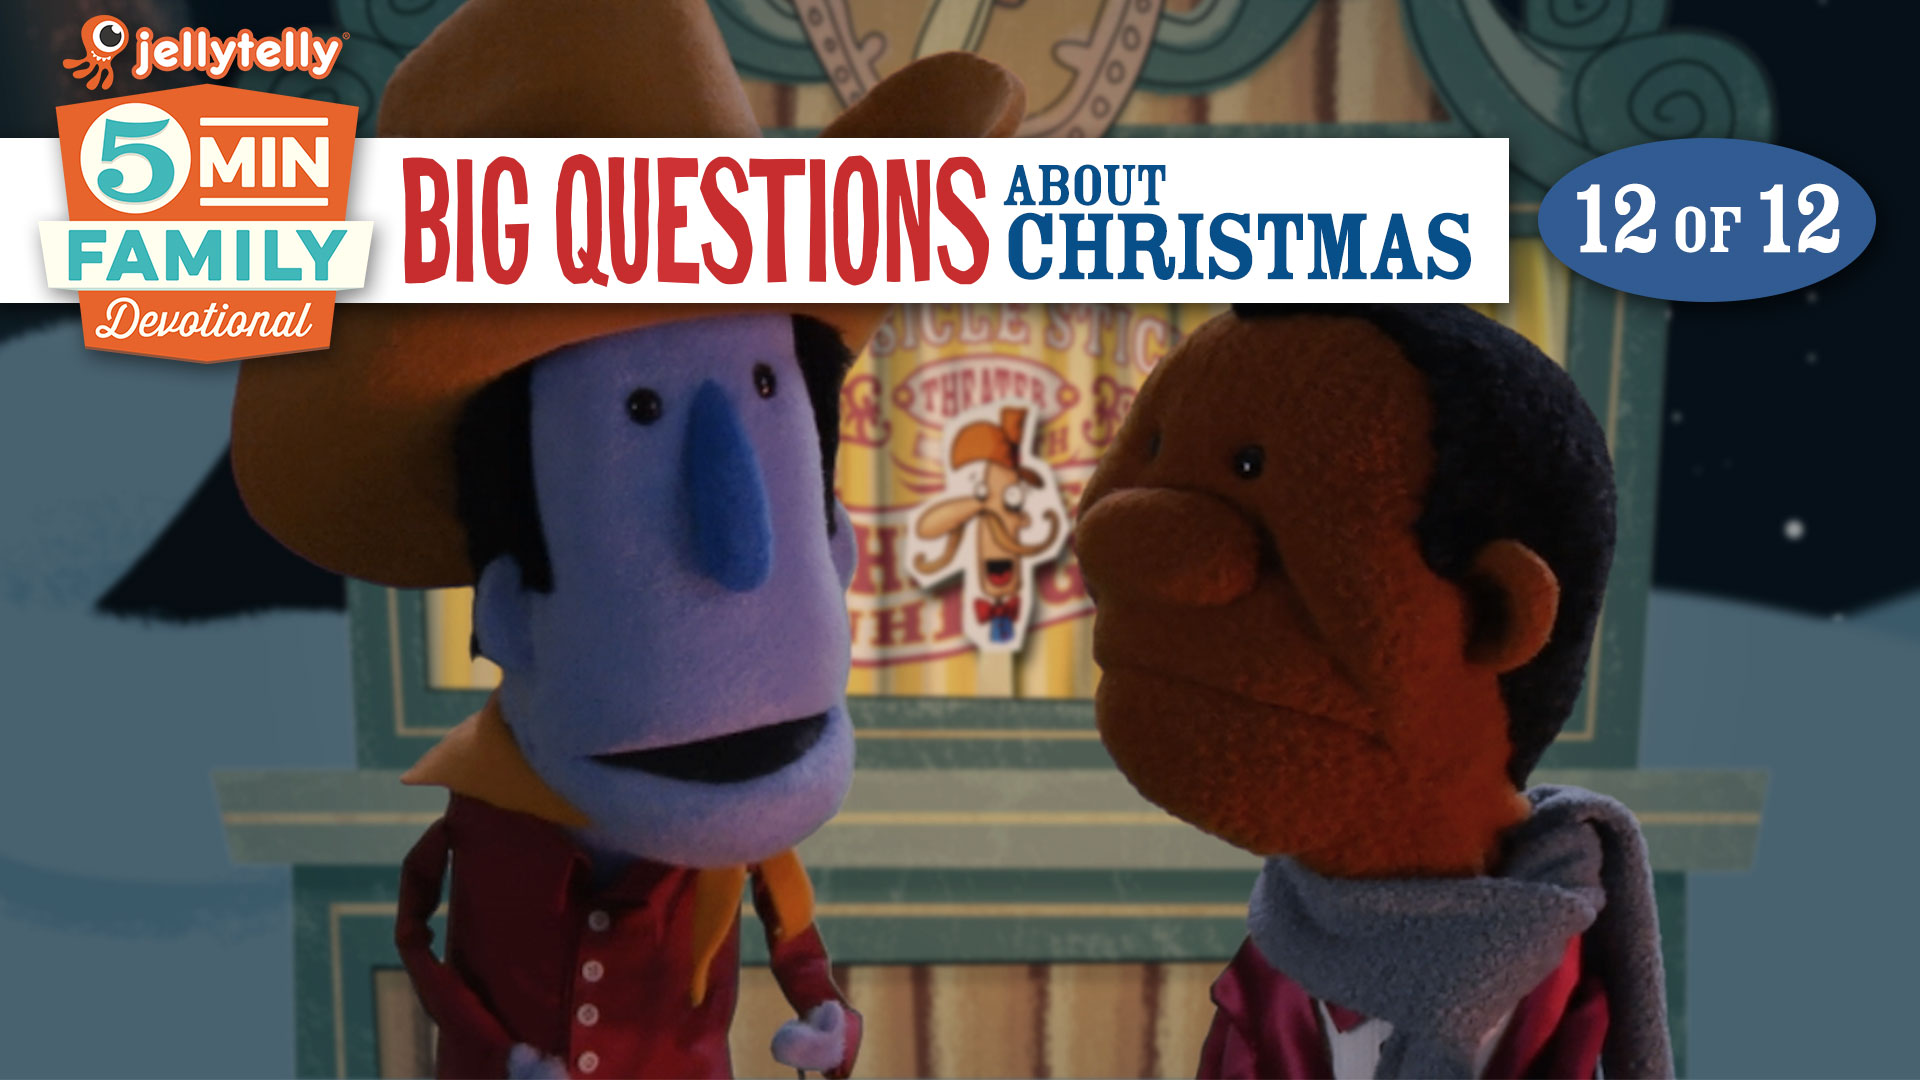 5mfd christmas 12 svod featured